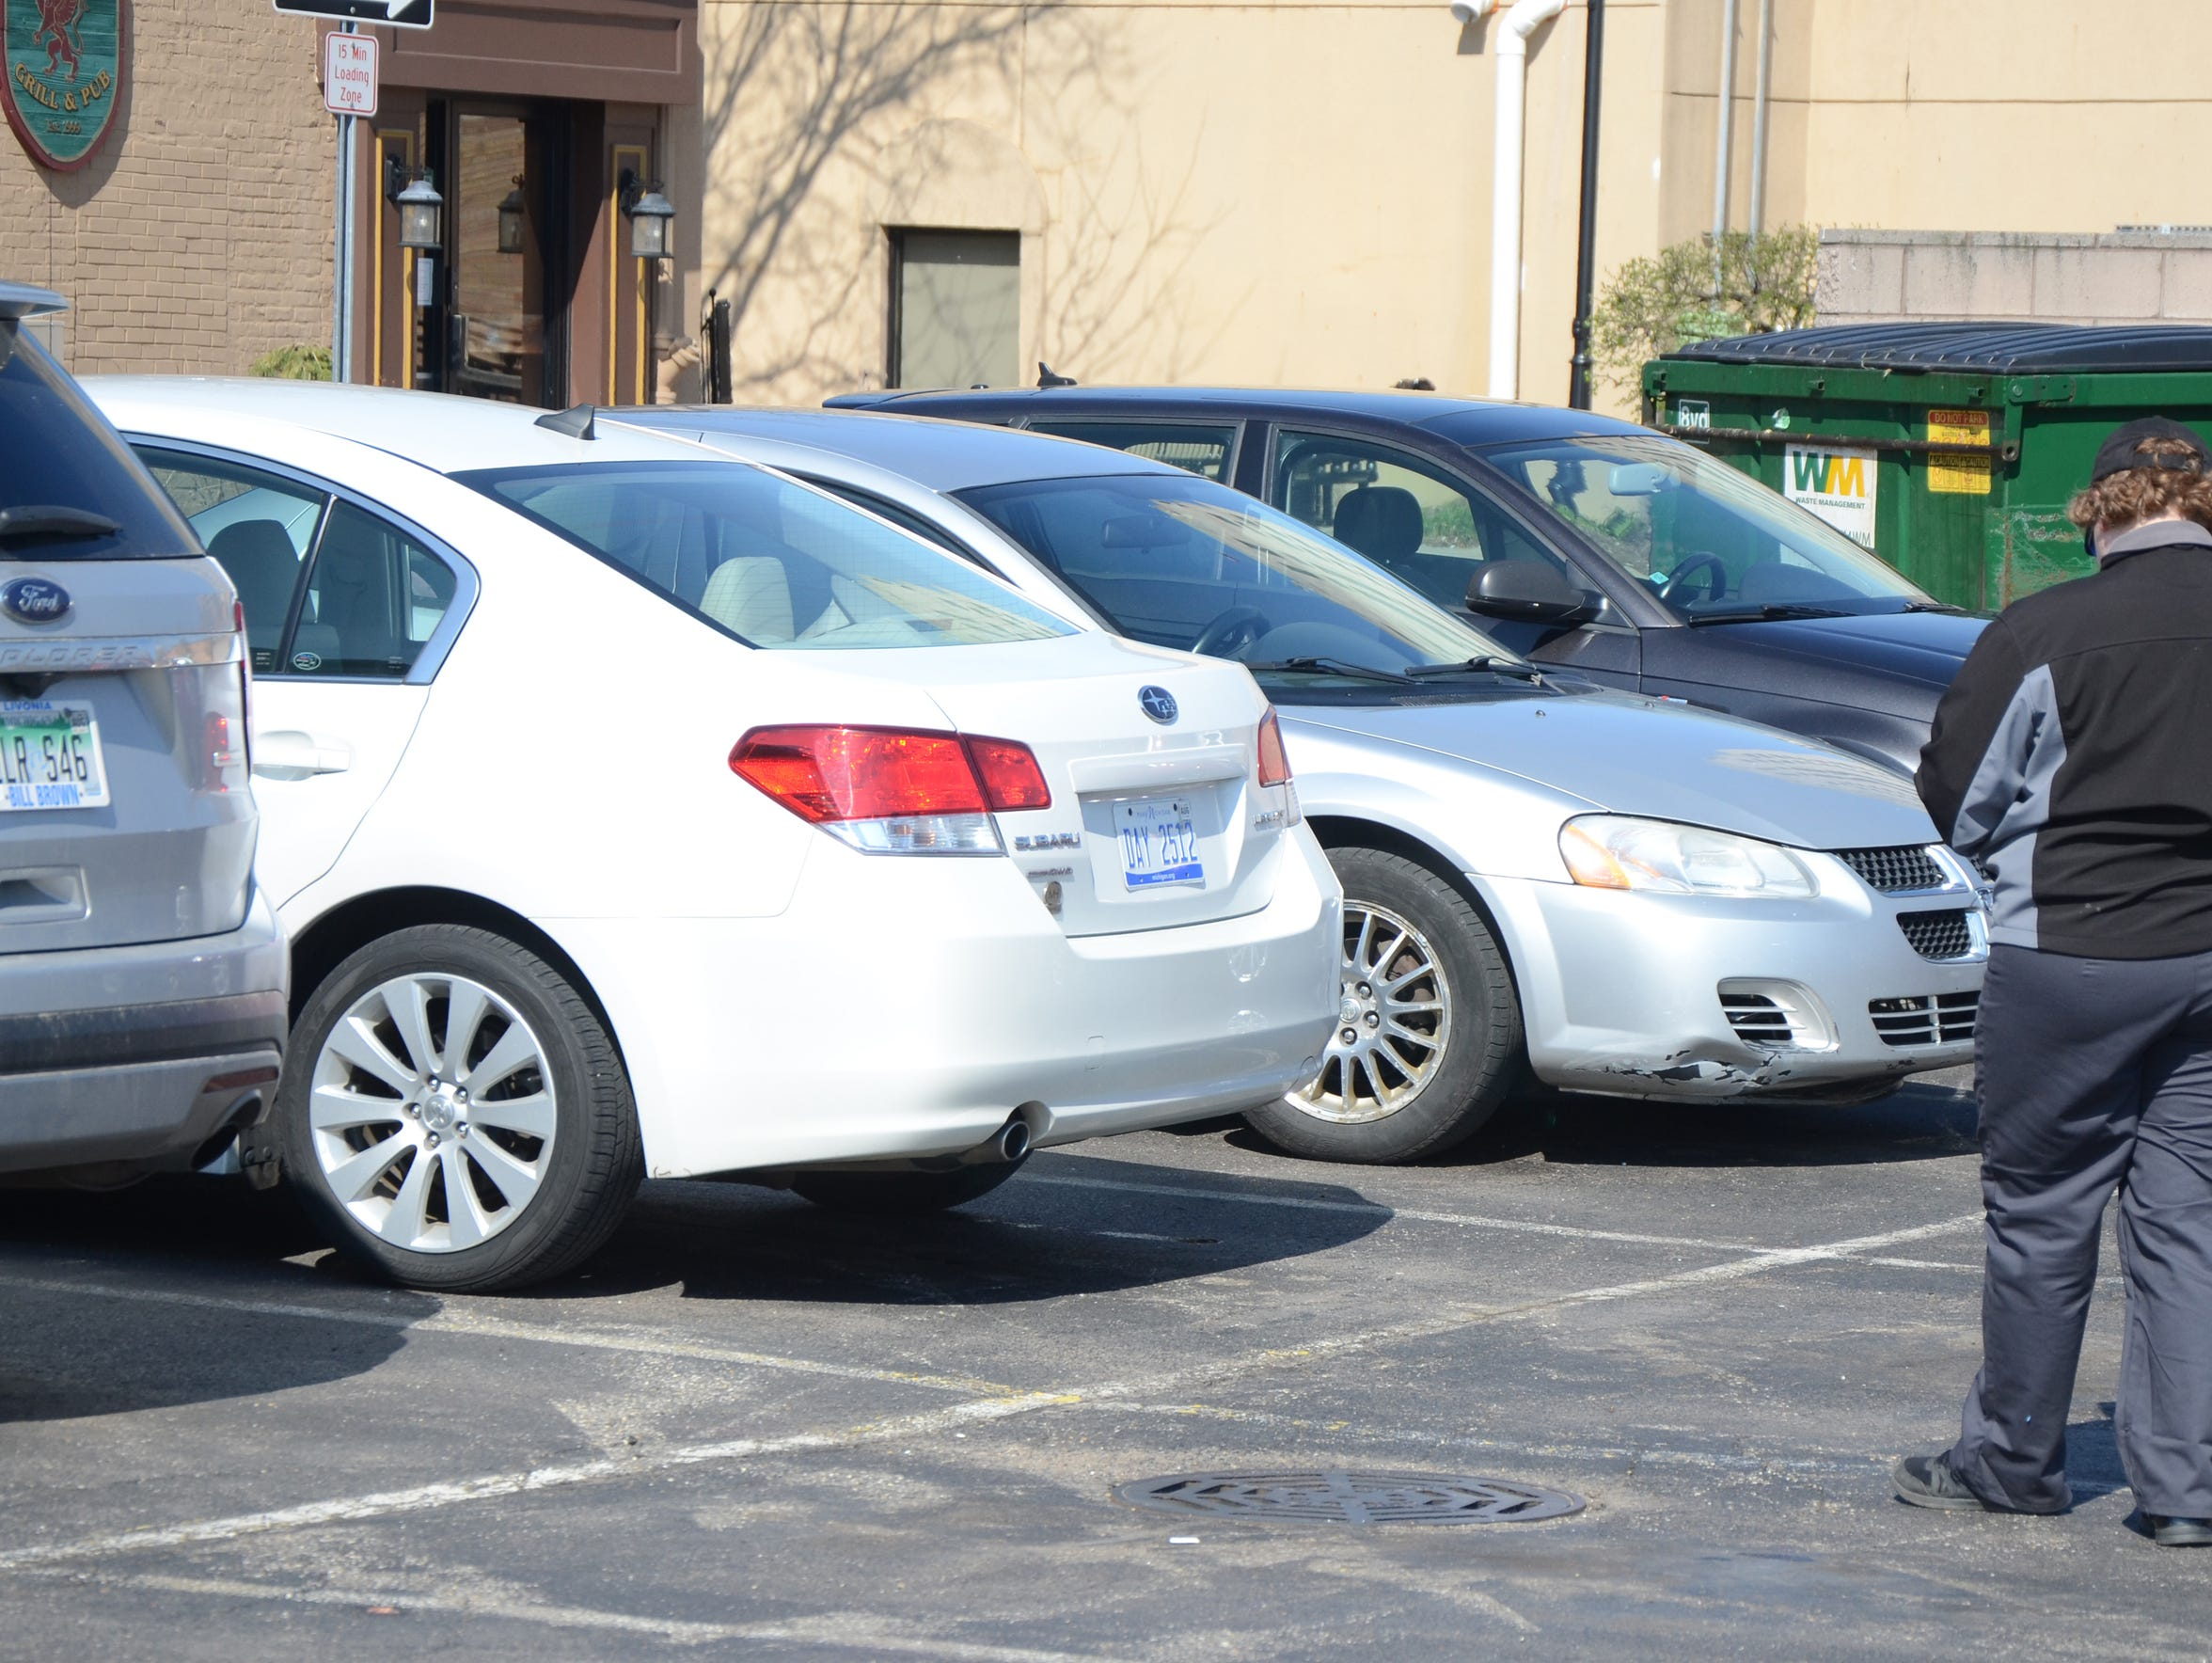 An employee of Ampco Parking checks cars in the State